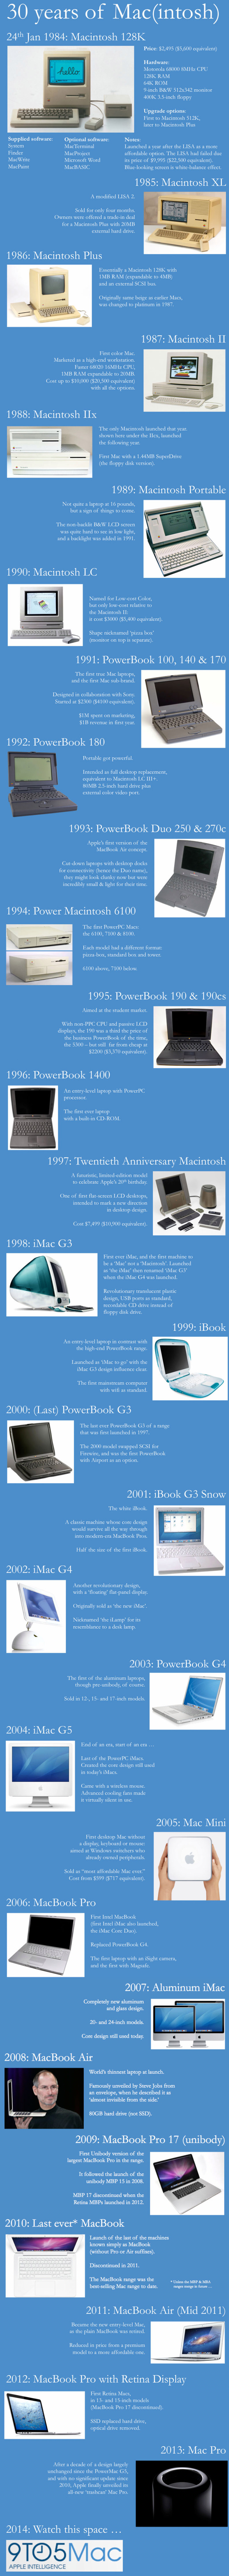 Macintosh 30years infographic